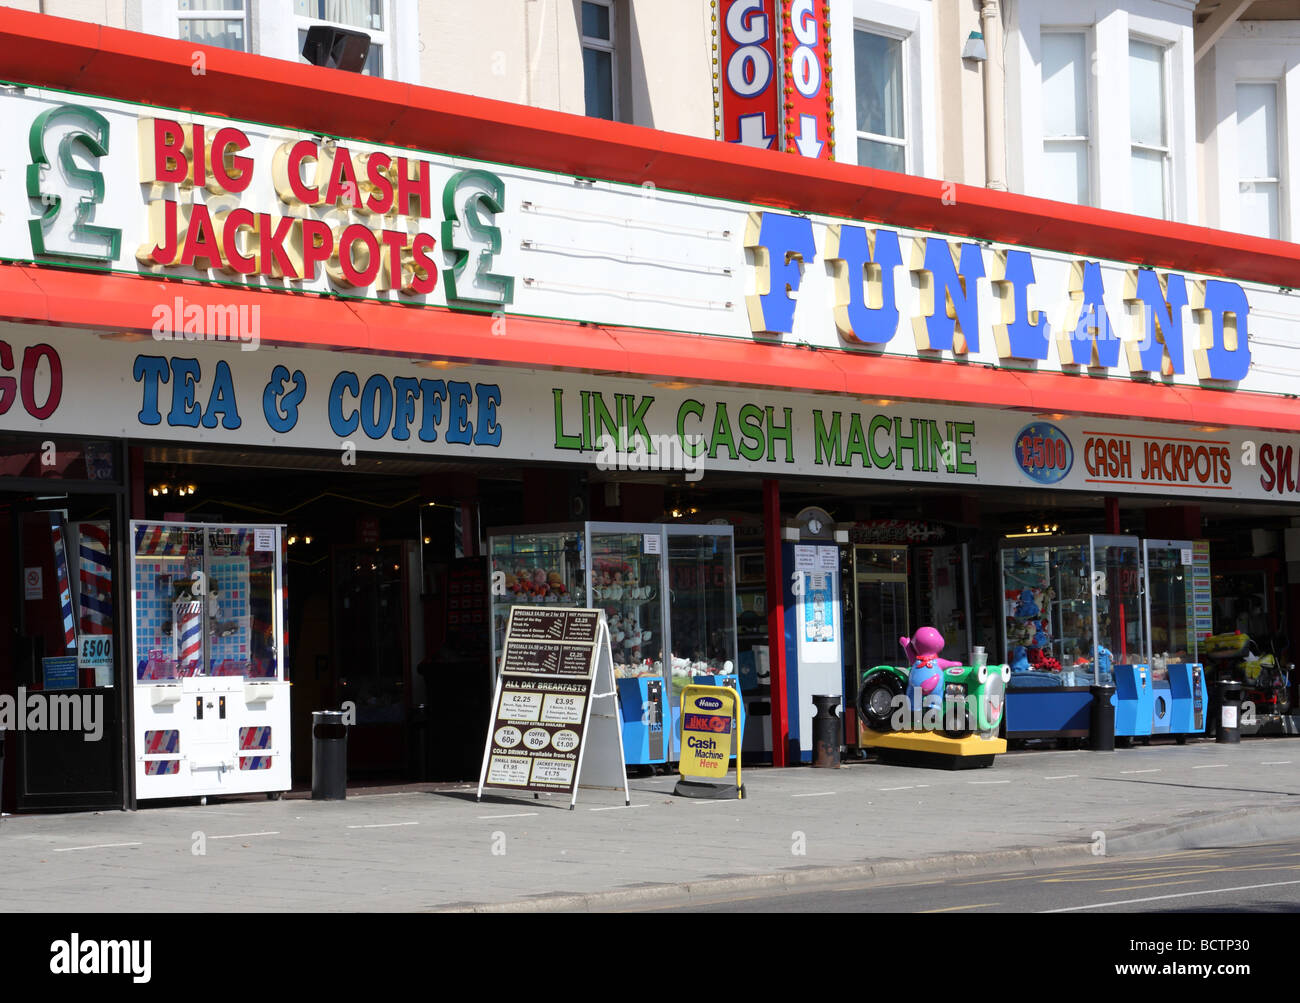 An amusement arcade in Skegness, Lincolnshire, U.K. - Stock Image